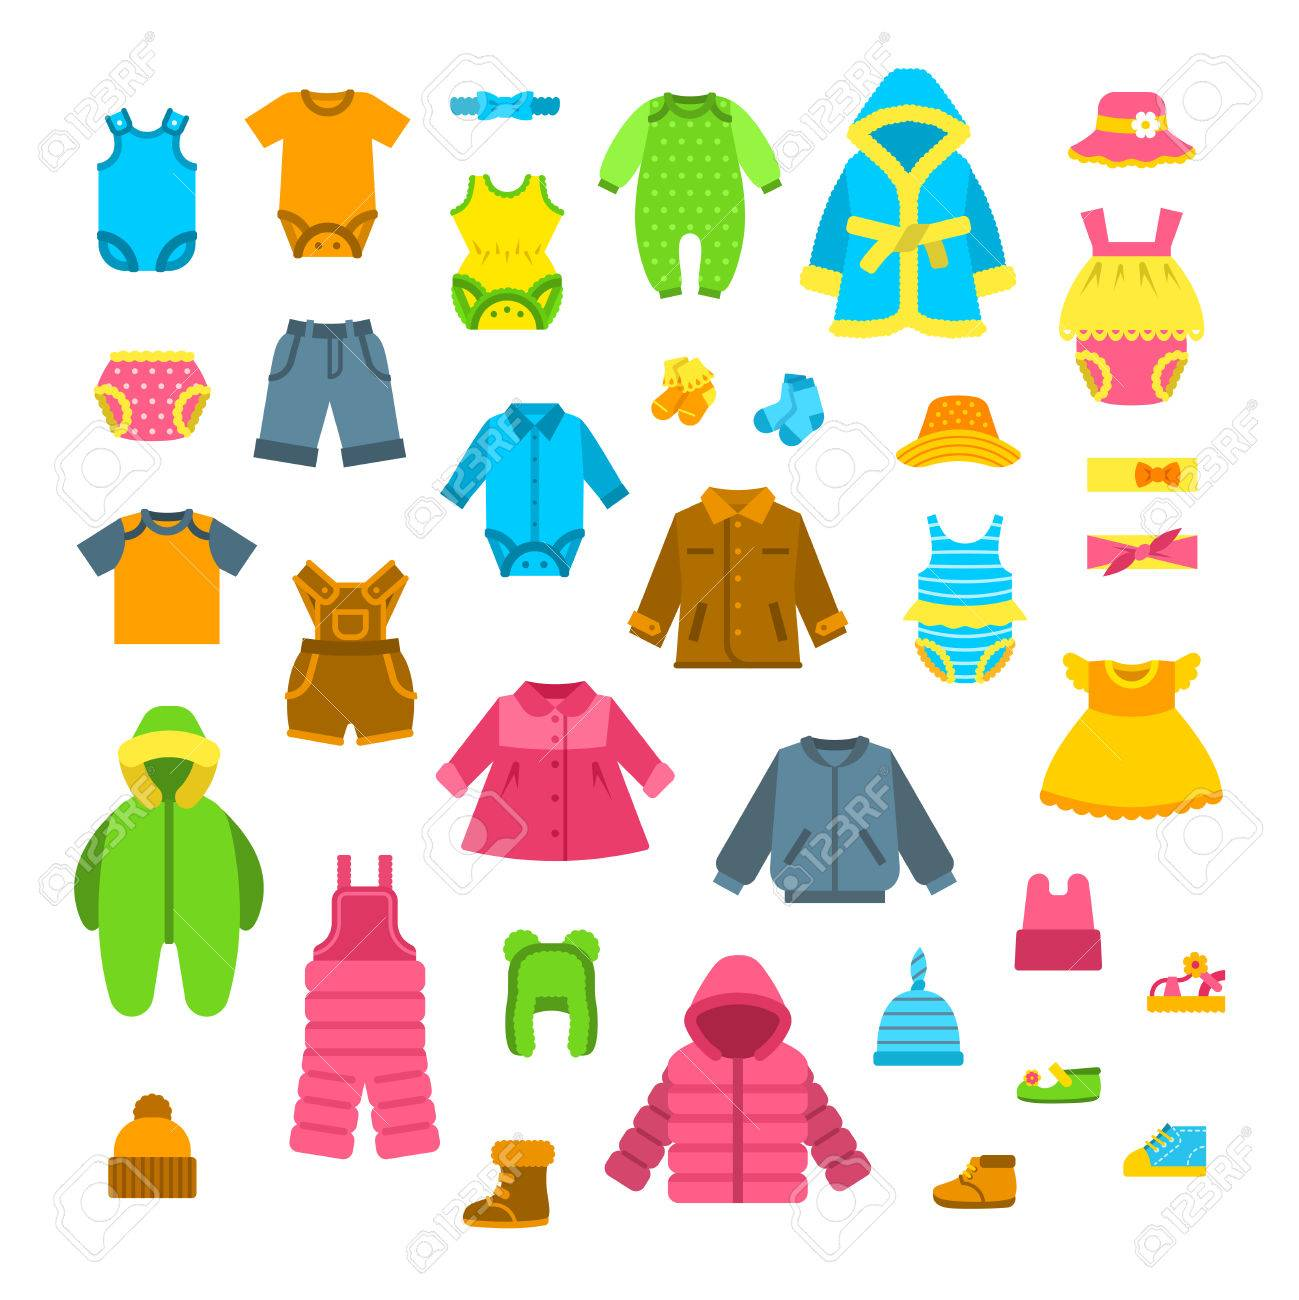 baby clothes vector illustrations set newborn kid outfit flat